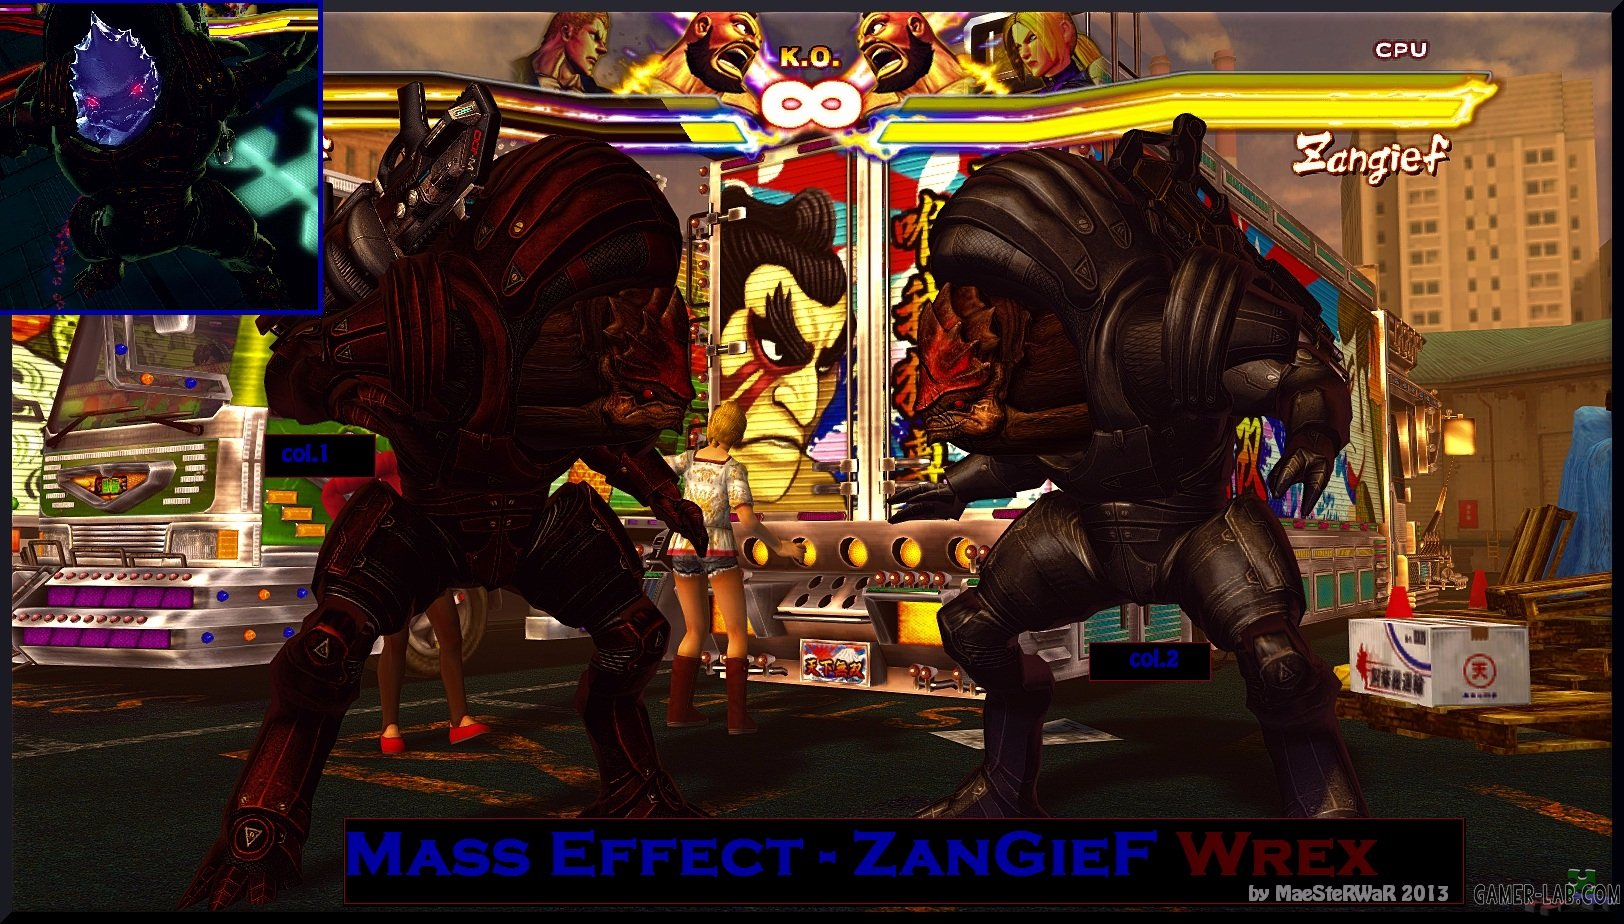 Zangief As Urdnot Wrex from Mass Effect